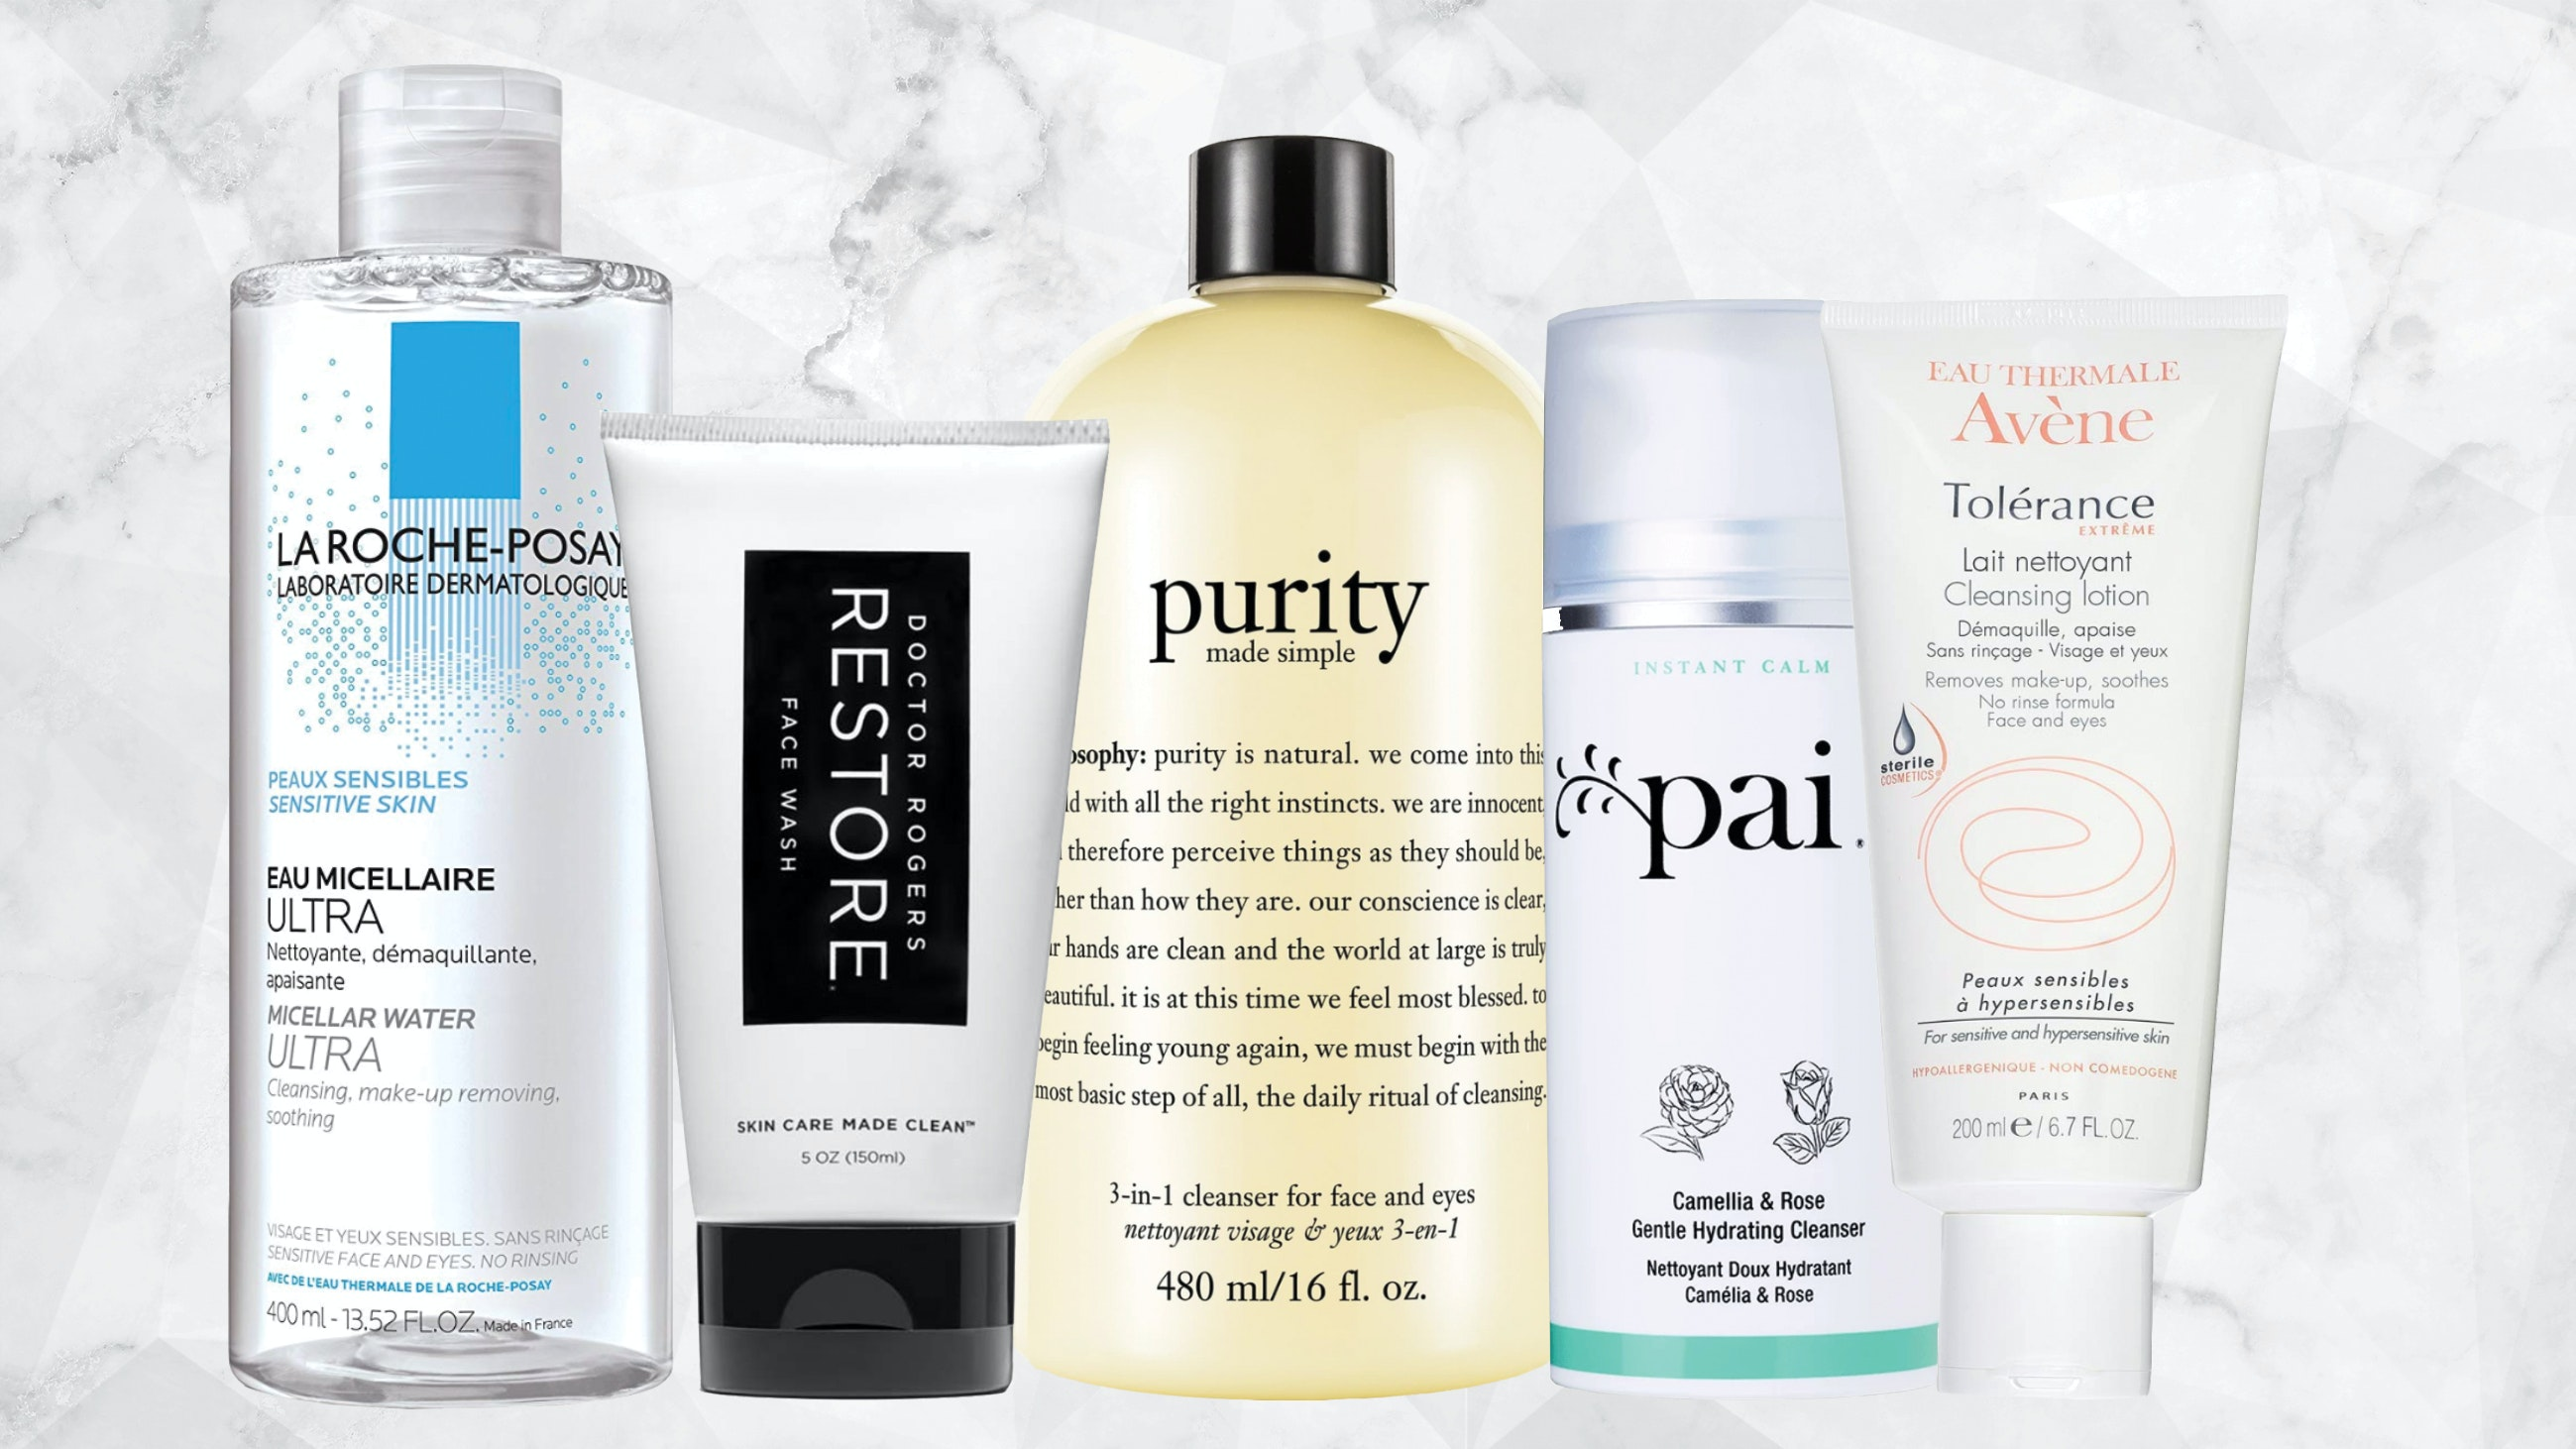 Derm recommended face washes for sensitive skin